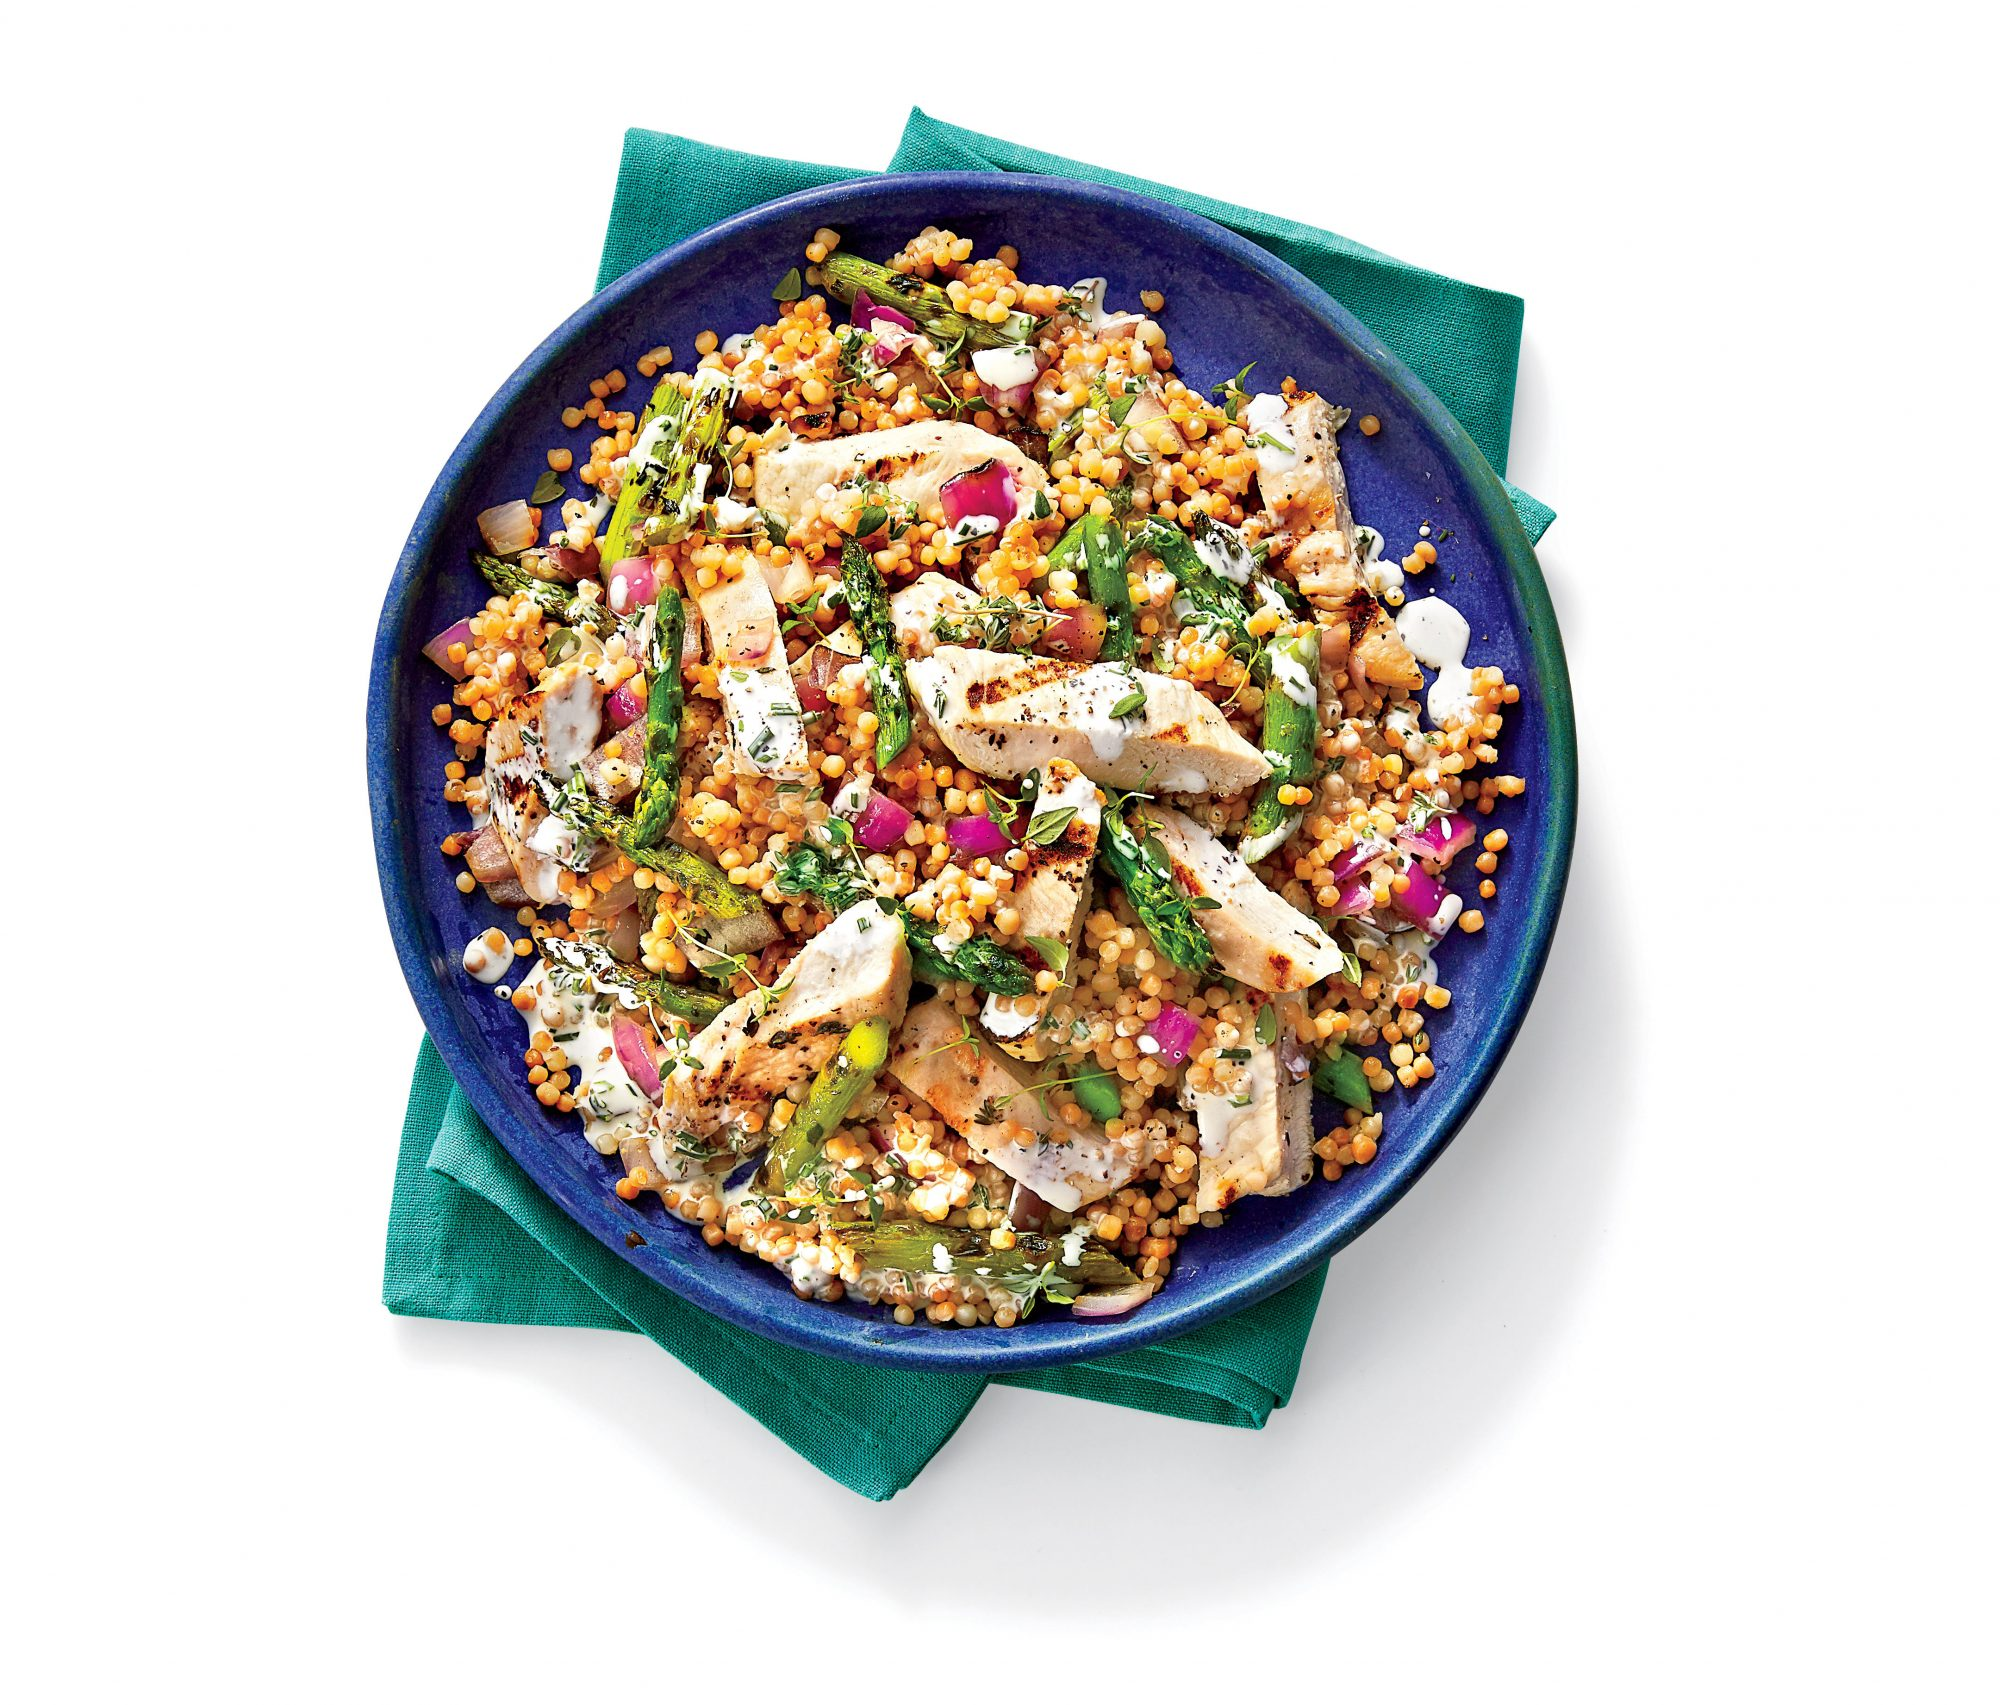 Grilled Chicken and Toasted Couscous Salad with Lemon-Buttermilk Dressing